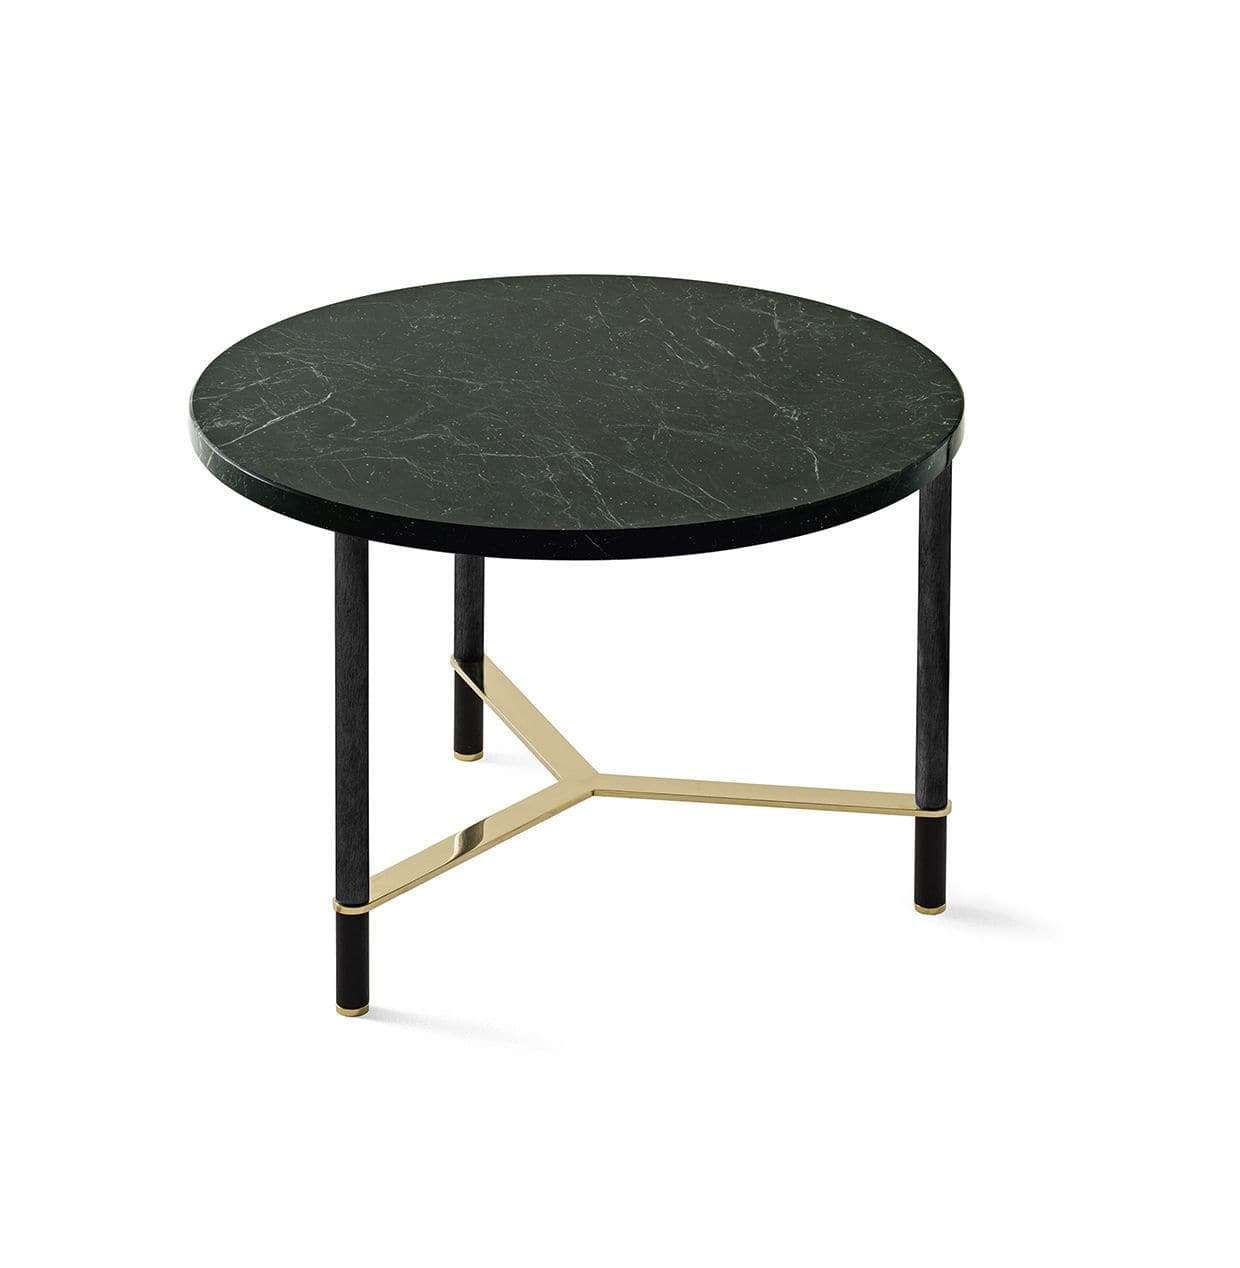 Picture of: Contemporary Coffee Table Cookies Circle Gallotti Radice Wooden Marble Anodized Aluminum Base